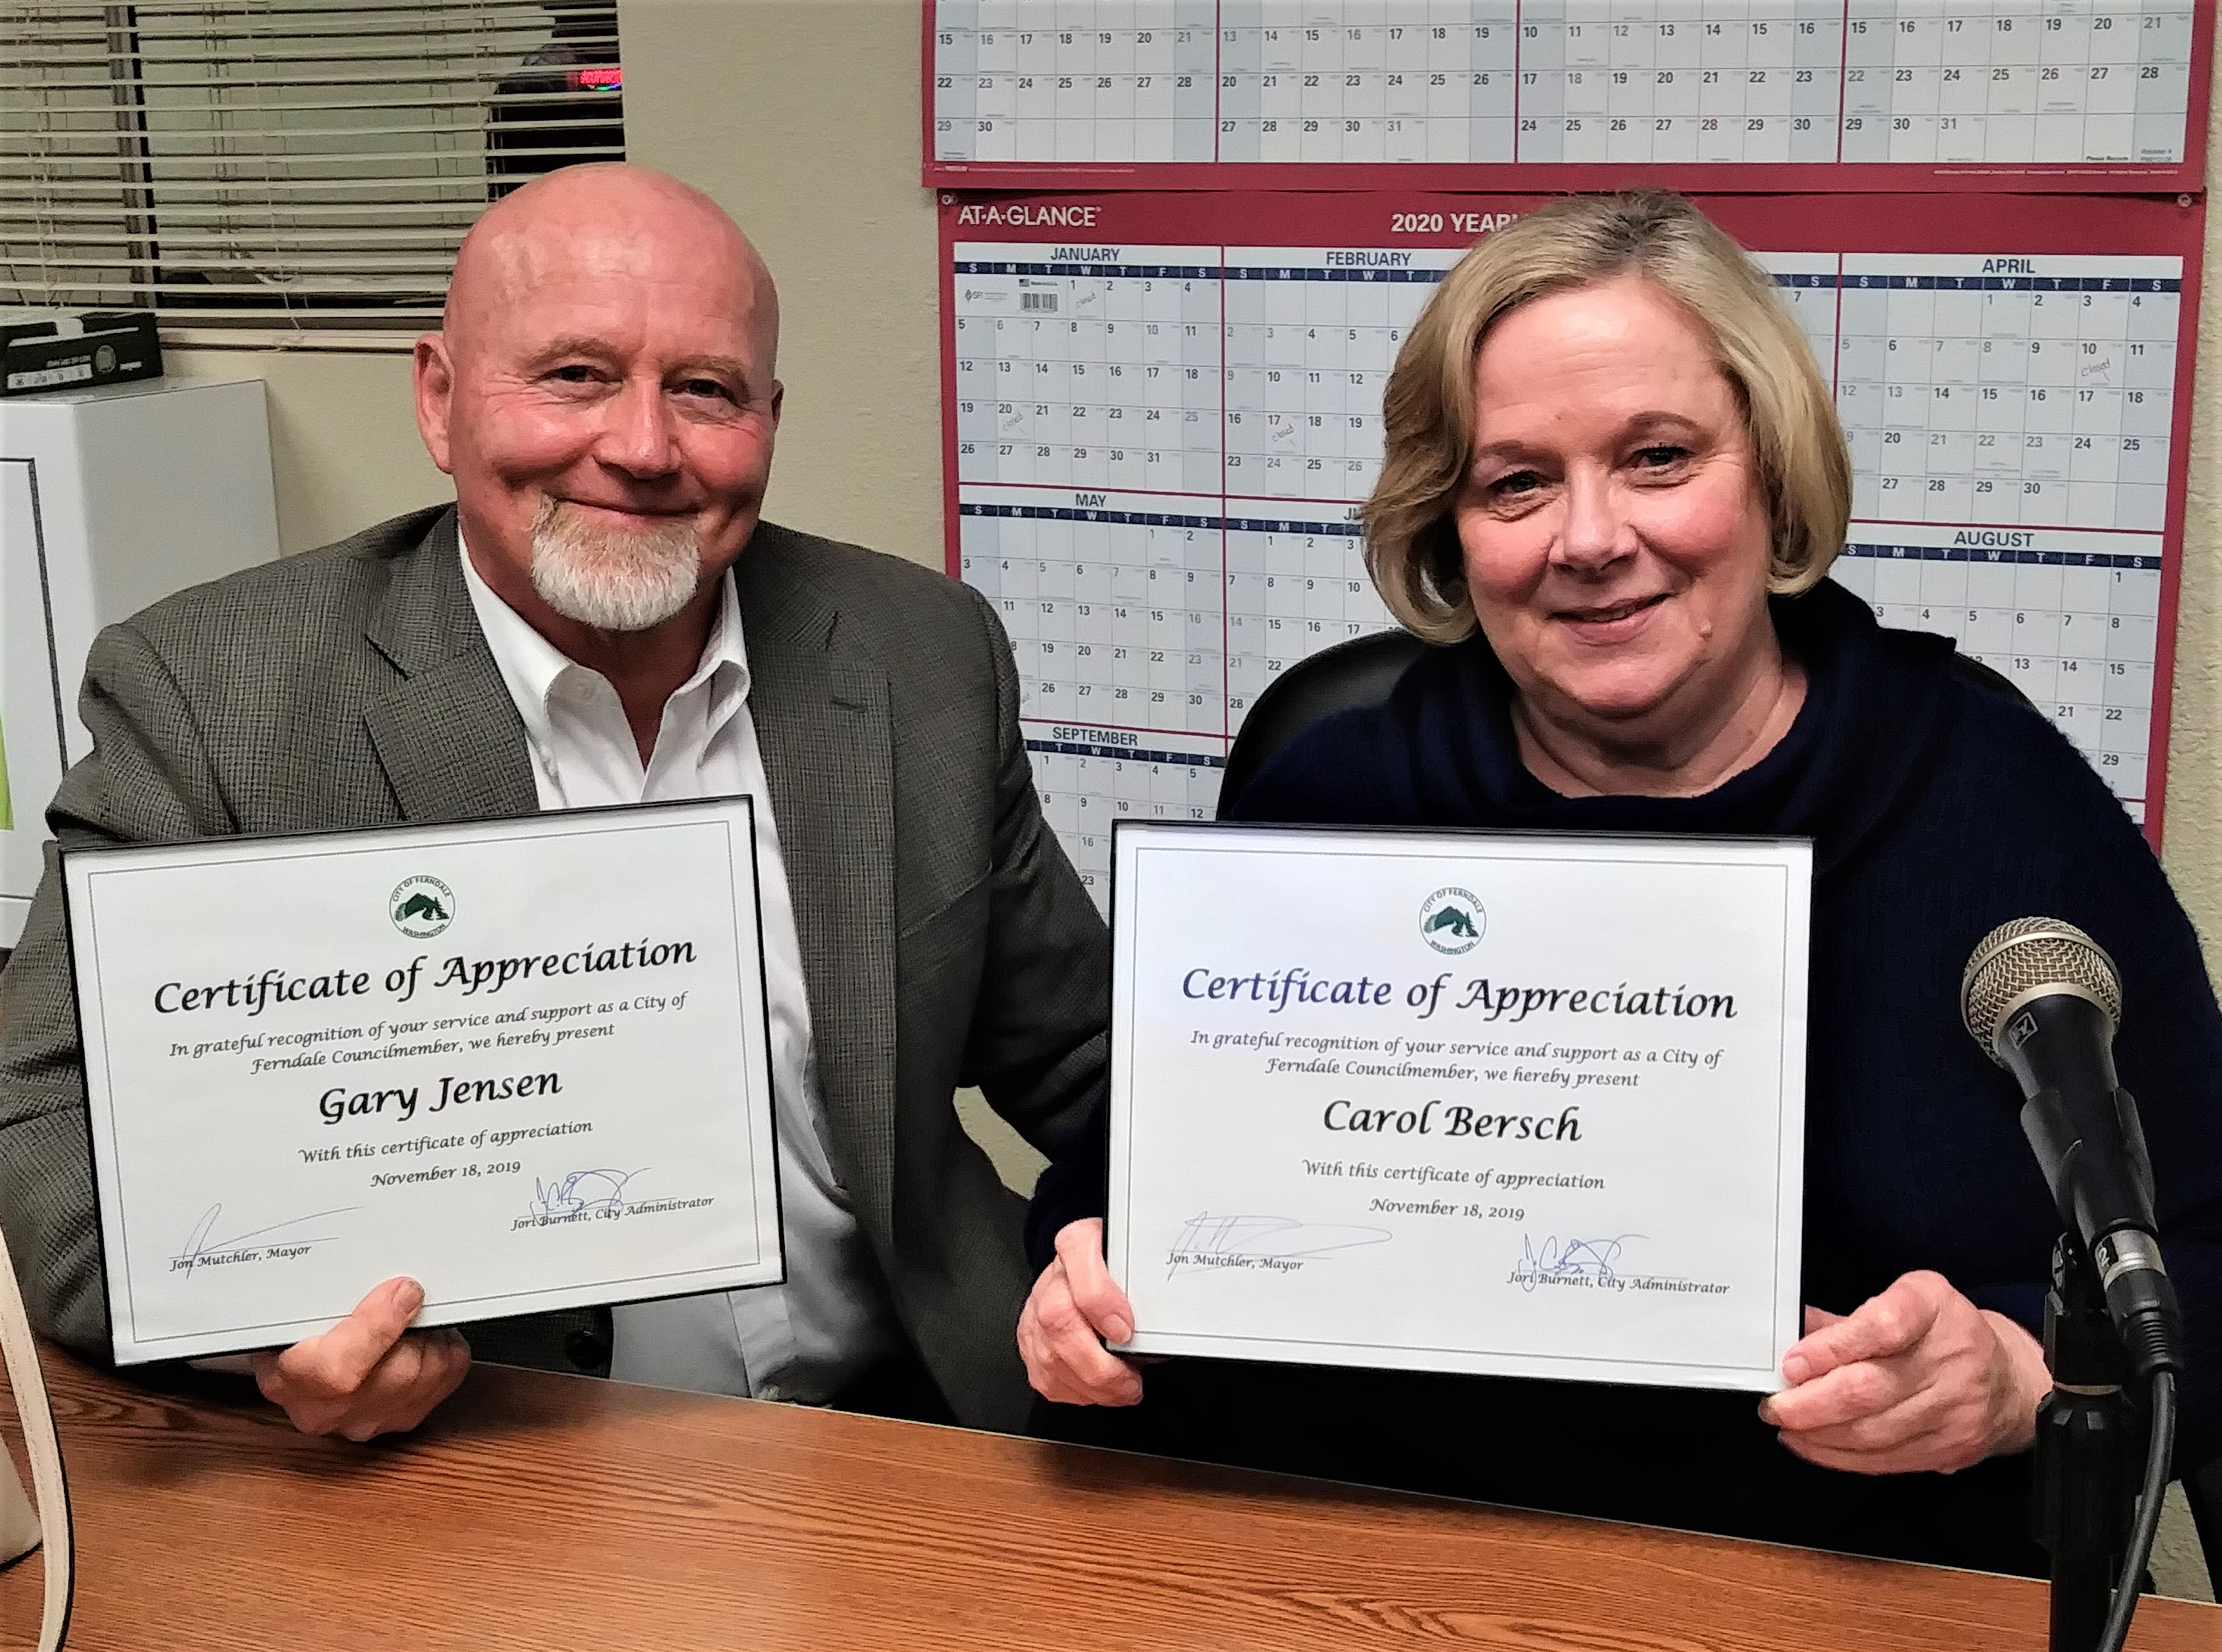 Gary Jensen and Carol Bersch pose with appreciation certificates received from the City for filling in on City Council for a few months (November 19, 2019). Photo: Ben O'Brine